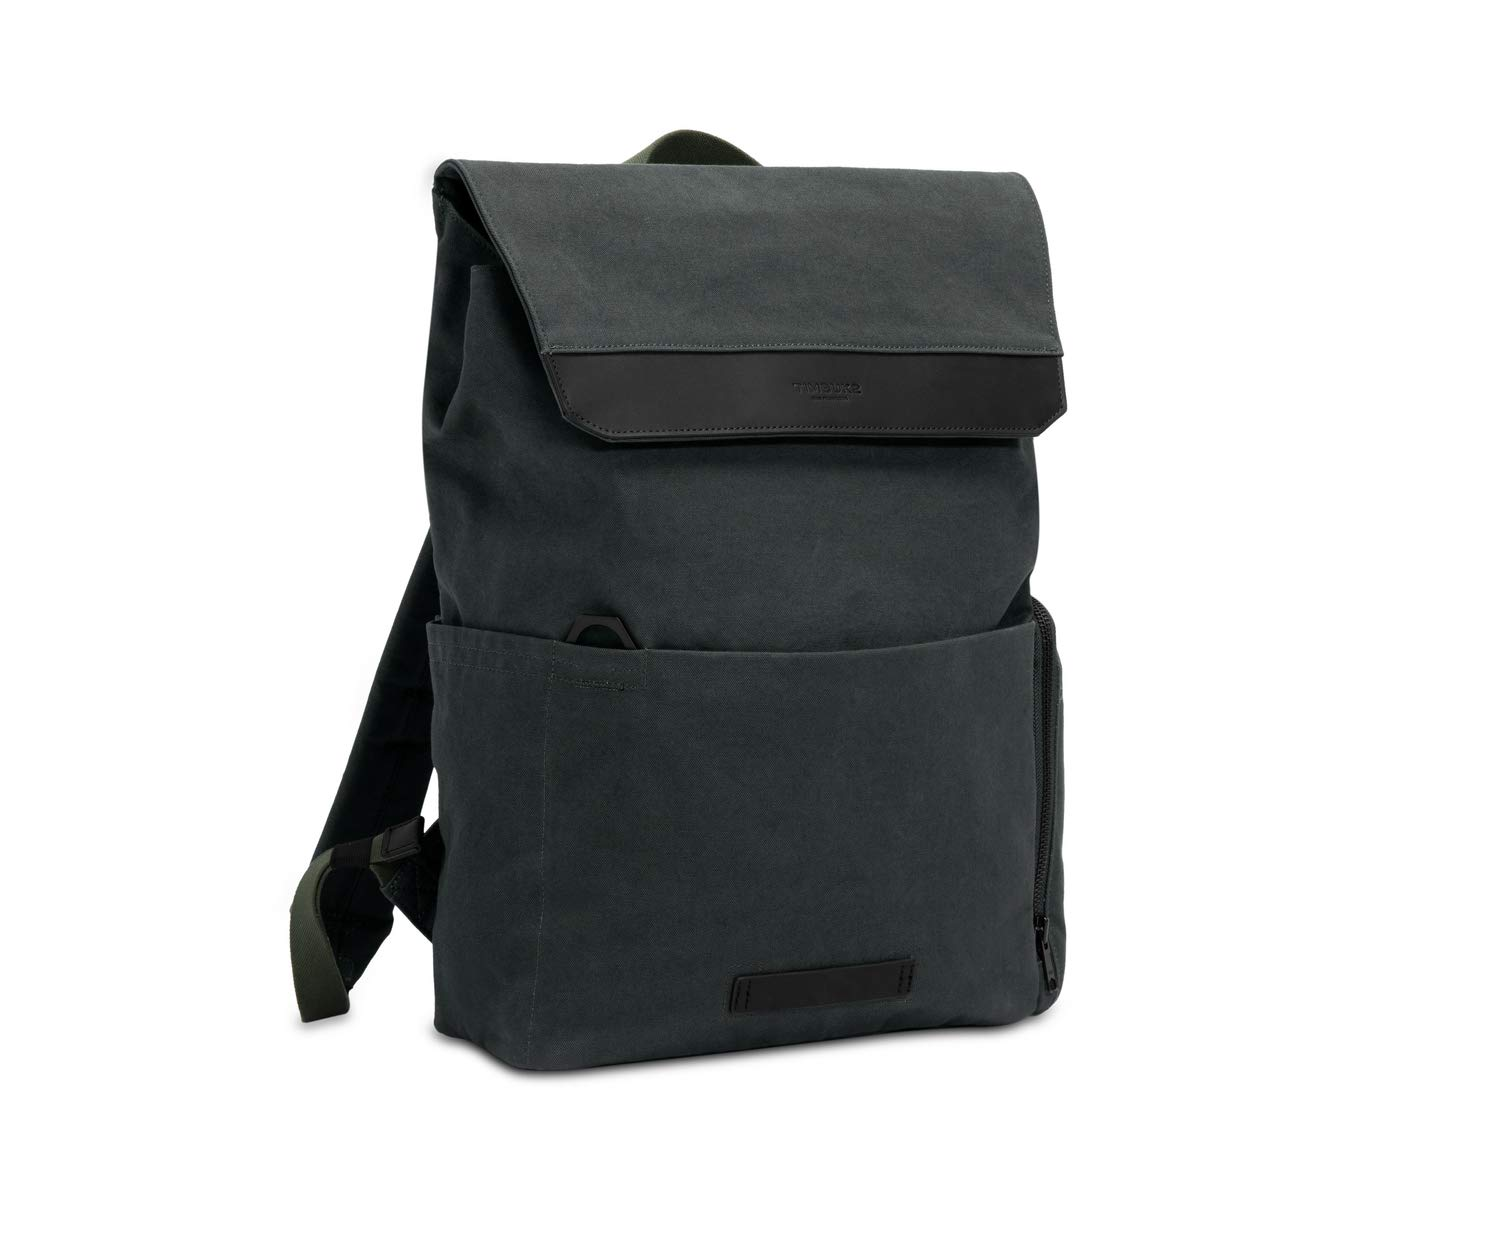 Timbuk2 Foundry Pack, Scout, One Size by Timbuk2